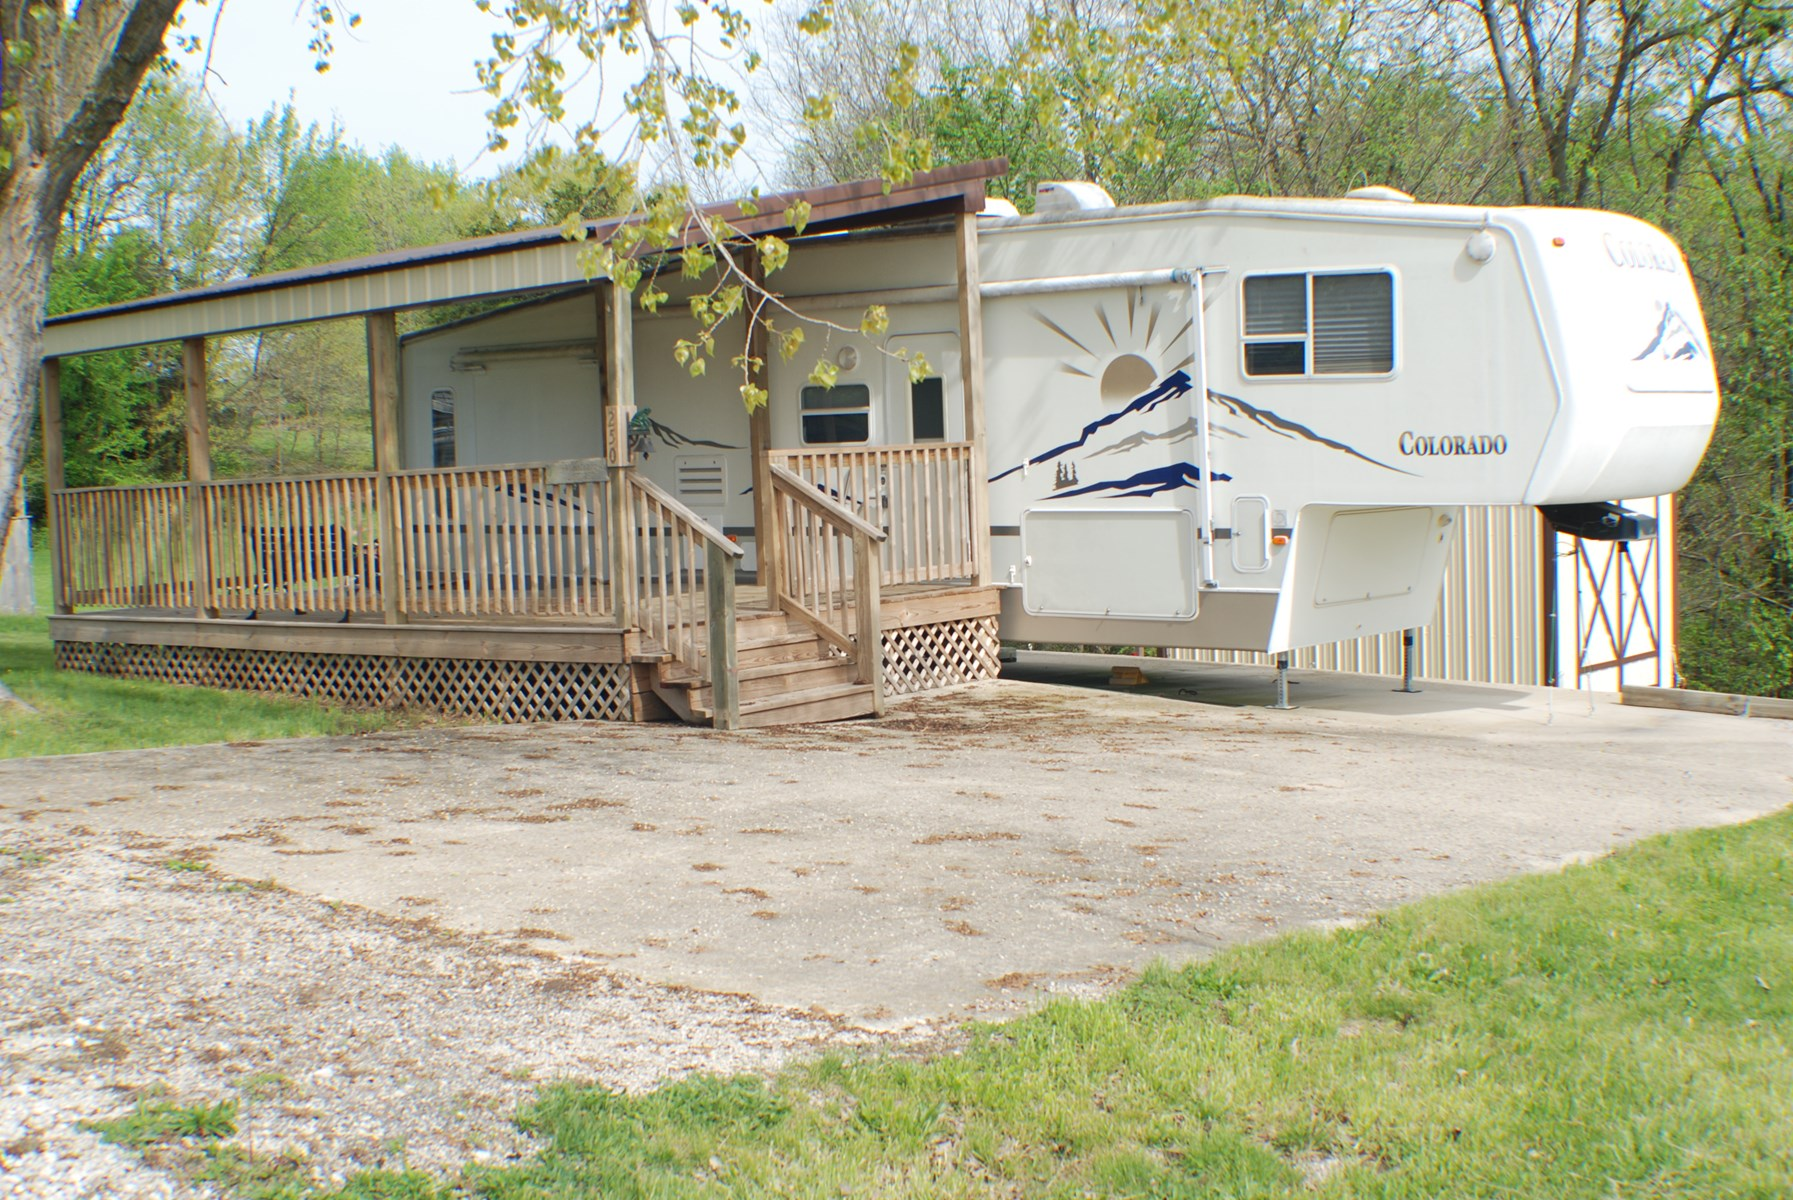 Outstanding camper setup at Lake Thunderhead for sale